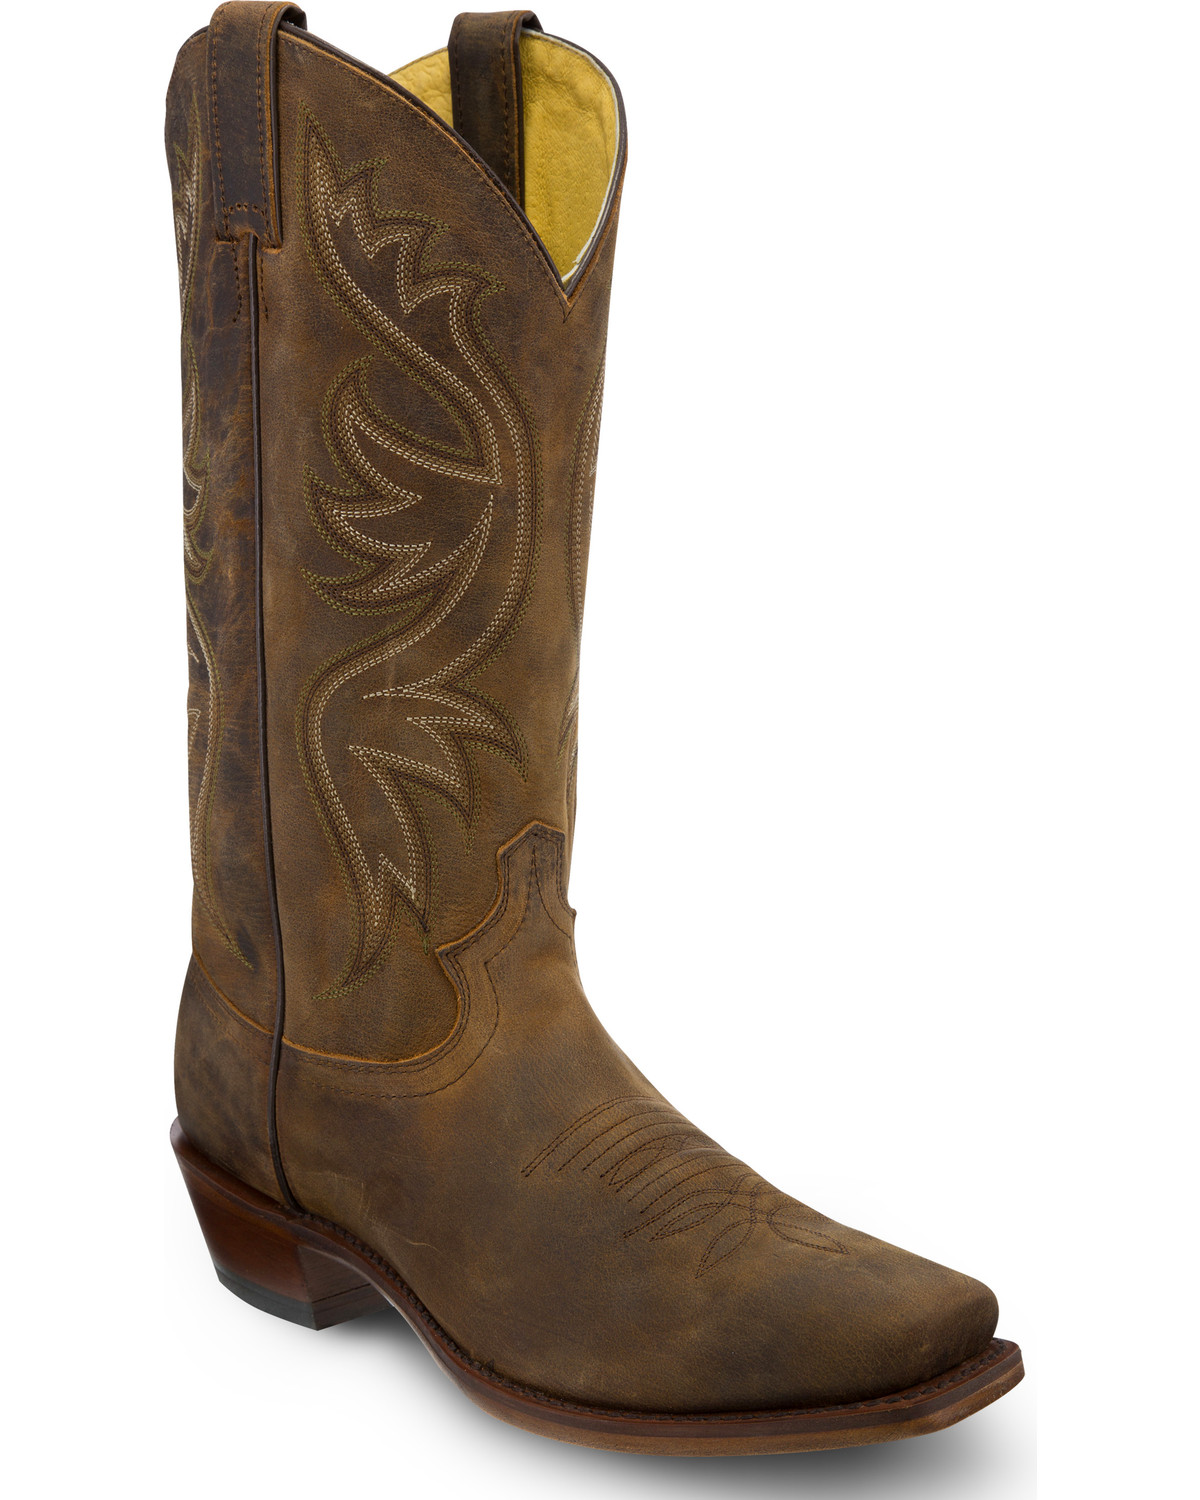 Awesome &quotSome Women Like Jewelry,&quot She Said &quotI Like Saddles&quot They Stretch Out Along The Walls Of Her 800 Square Foot Shop  A Small Selection Of Boots Include Tony Lamas, Laredos, Justins, TuffRiders,